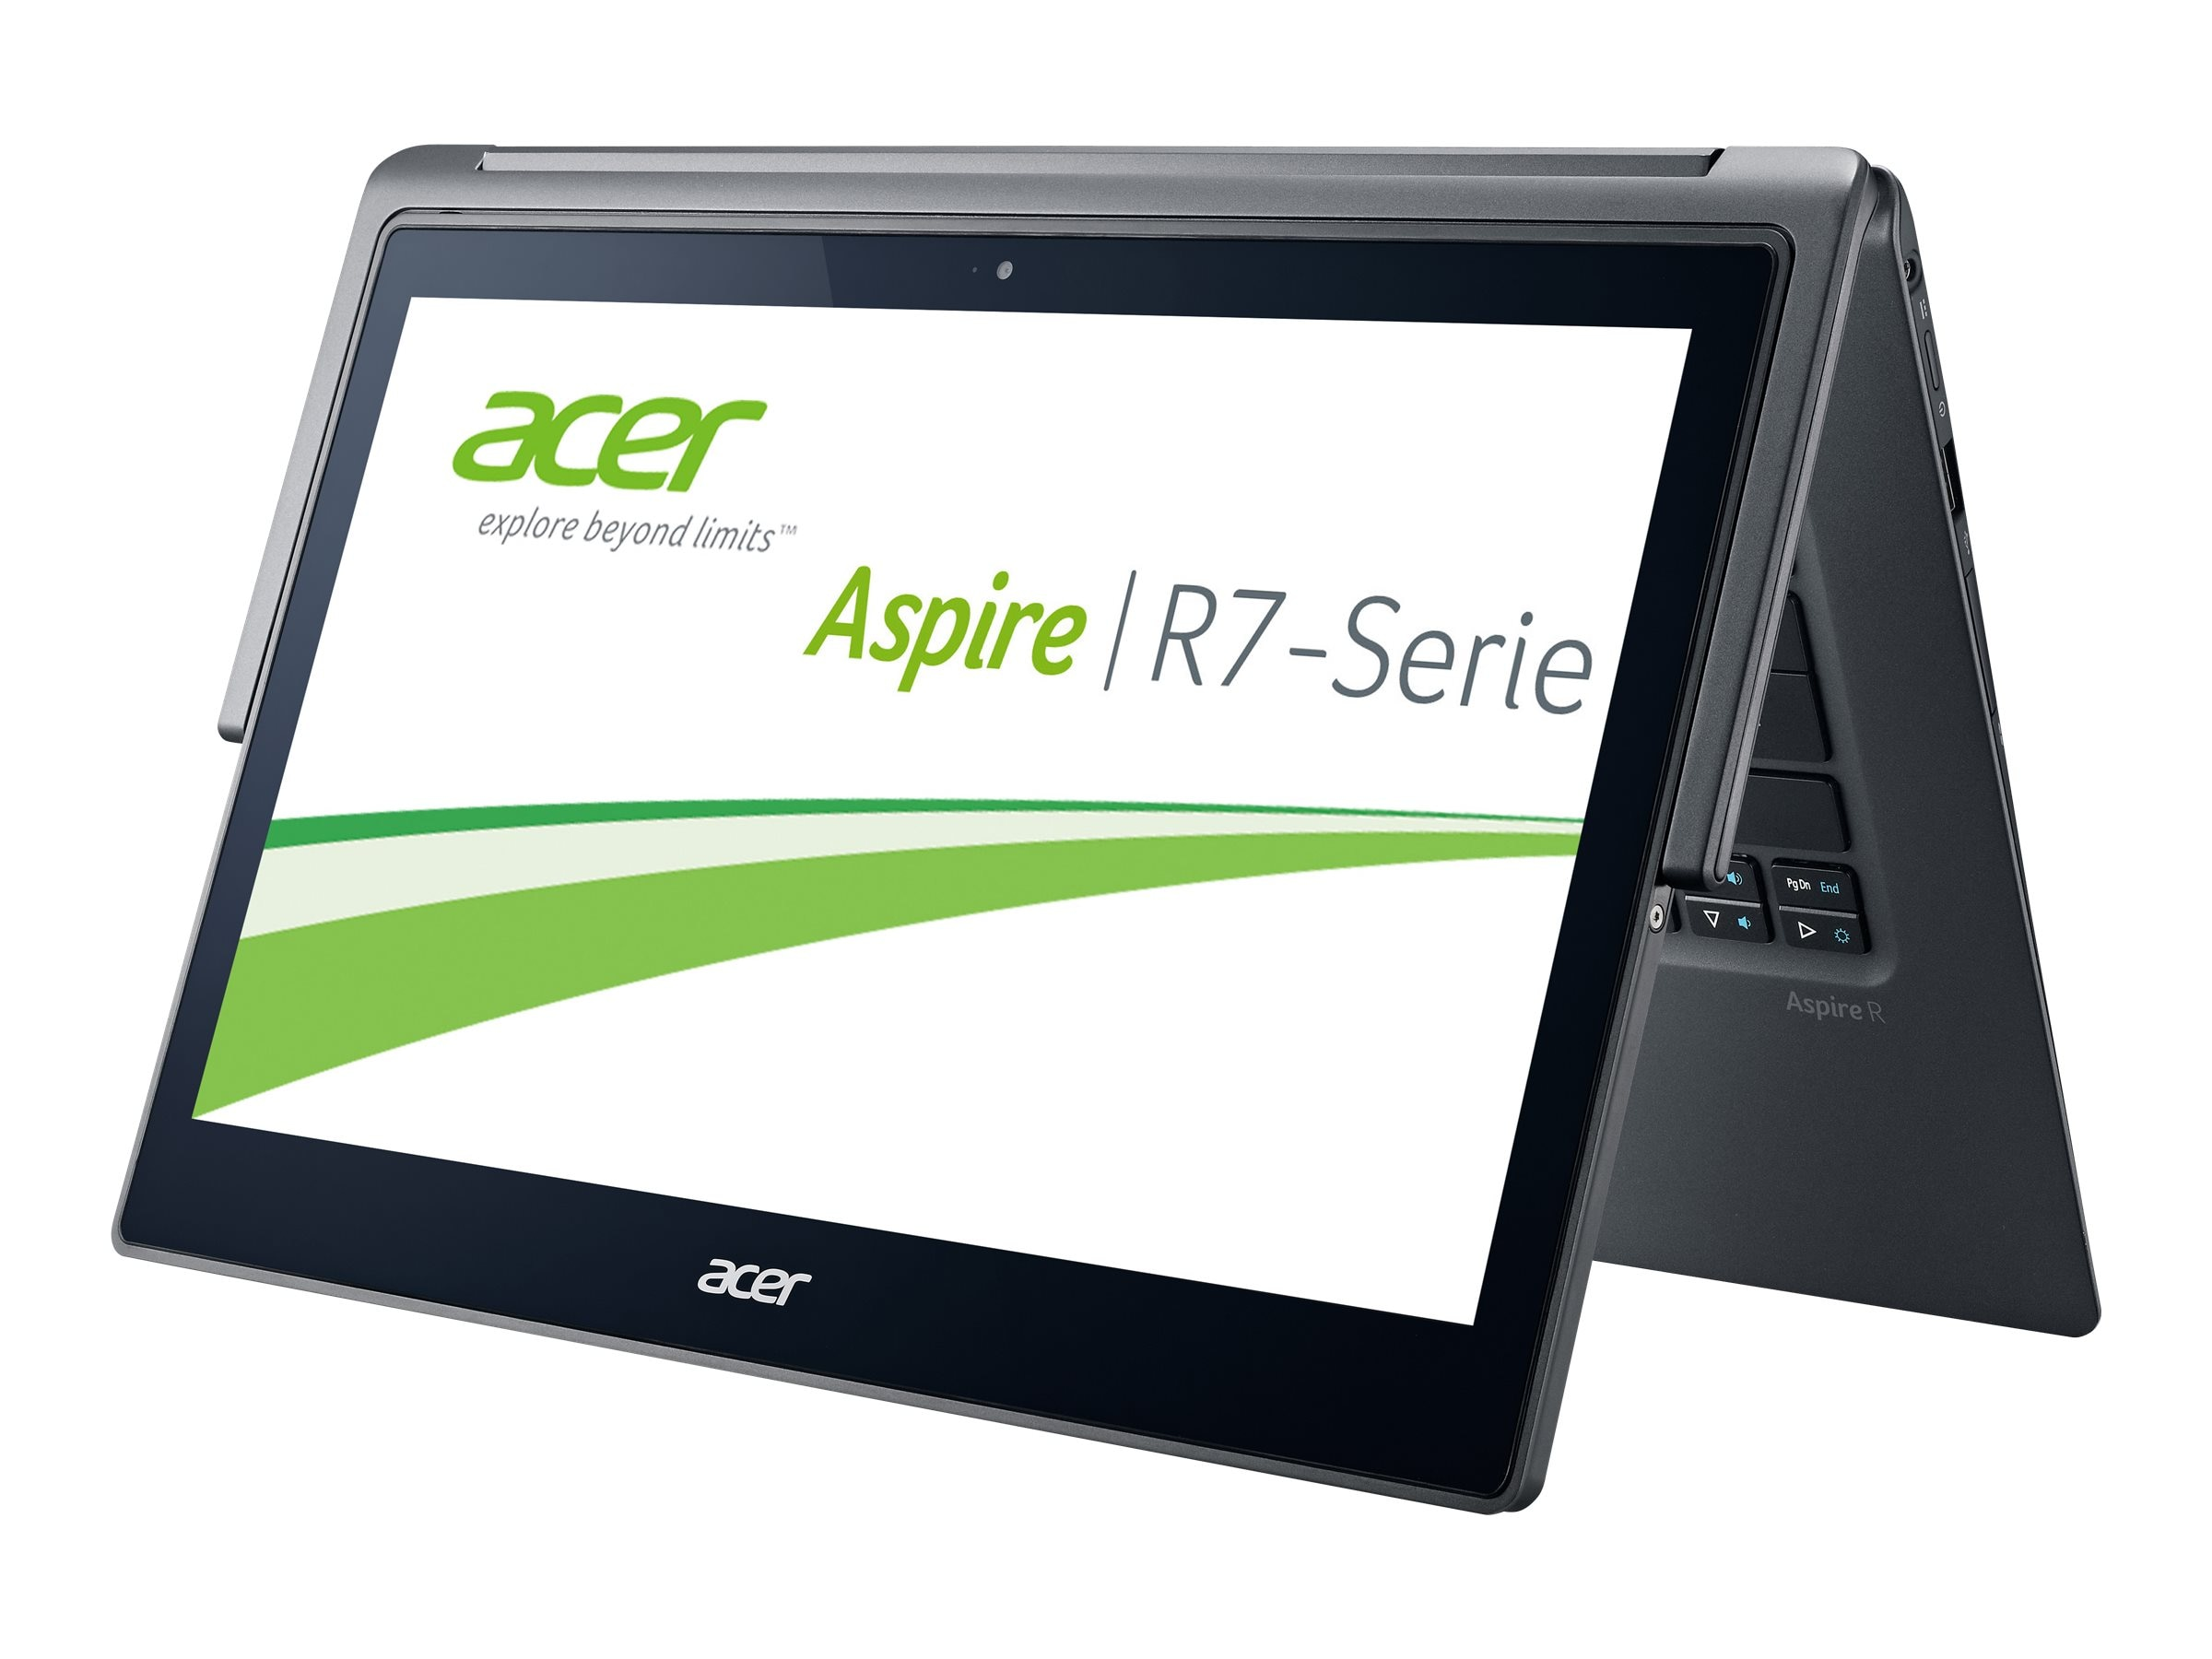 Acer Aspire R7-371T-59Q1 Core i5-5200U 2.2GHz 8GB 2x128GB SSD ac GNIC BT WC 4C 13.3 FHD IPS MT W8.1-64